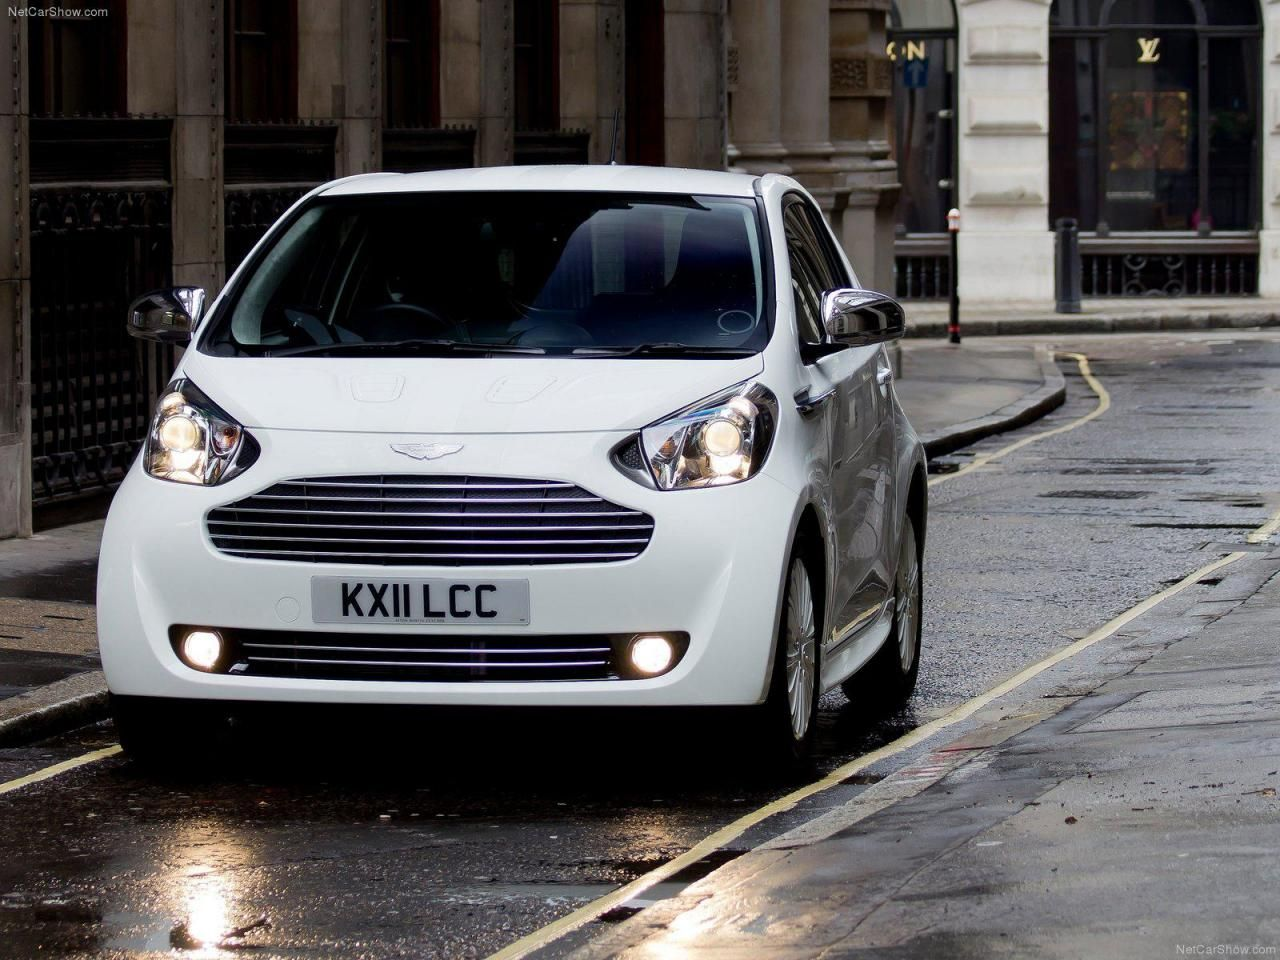 Aston Martin Cygnet. Shocking For An Aston Martin. It Looks Like Their  Version Of